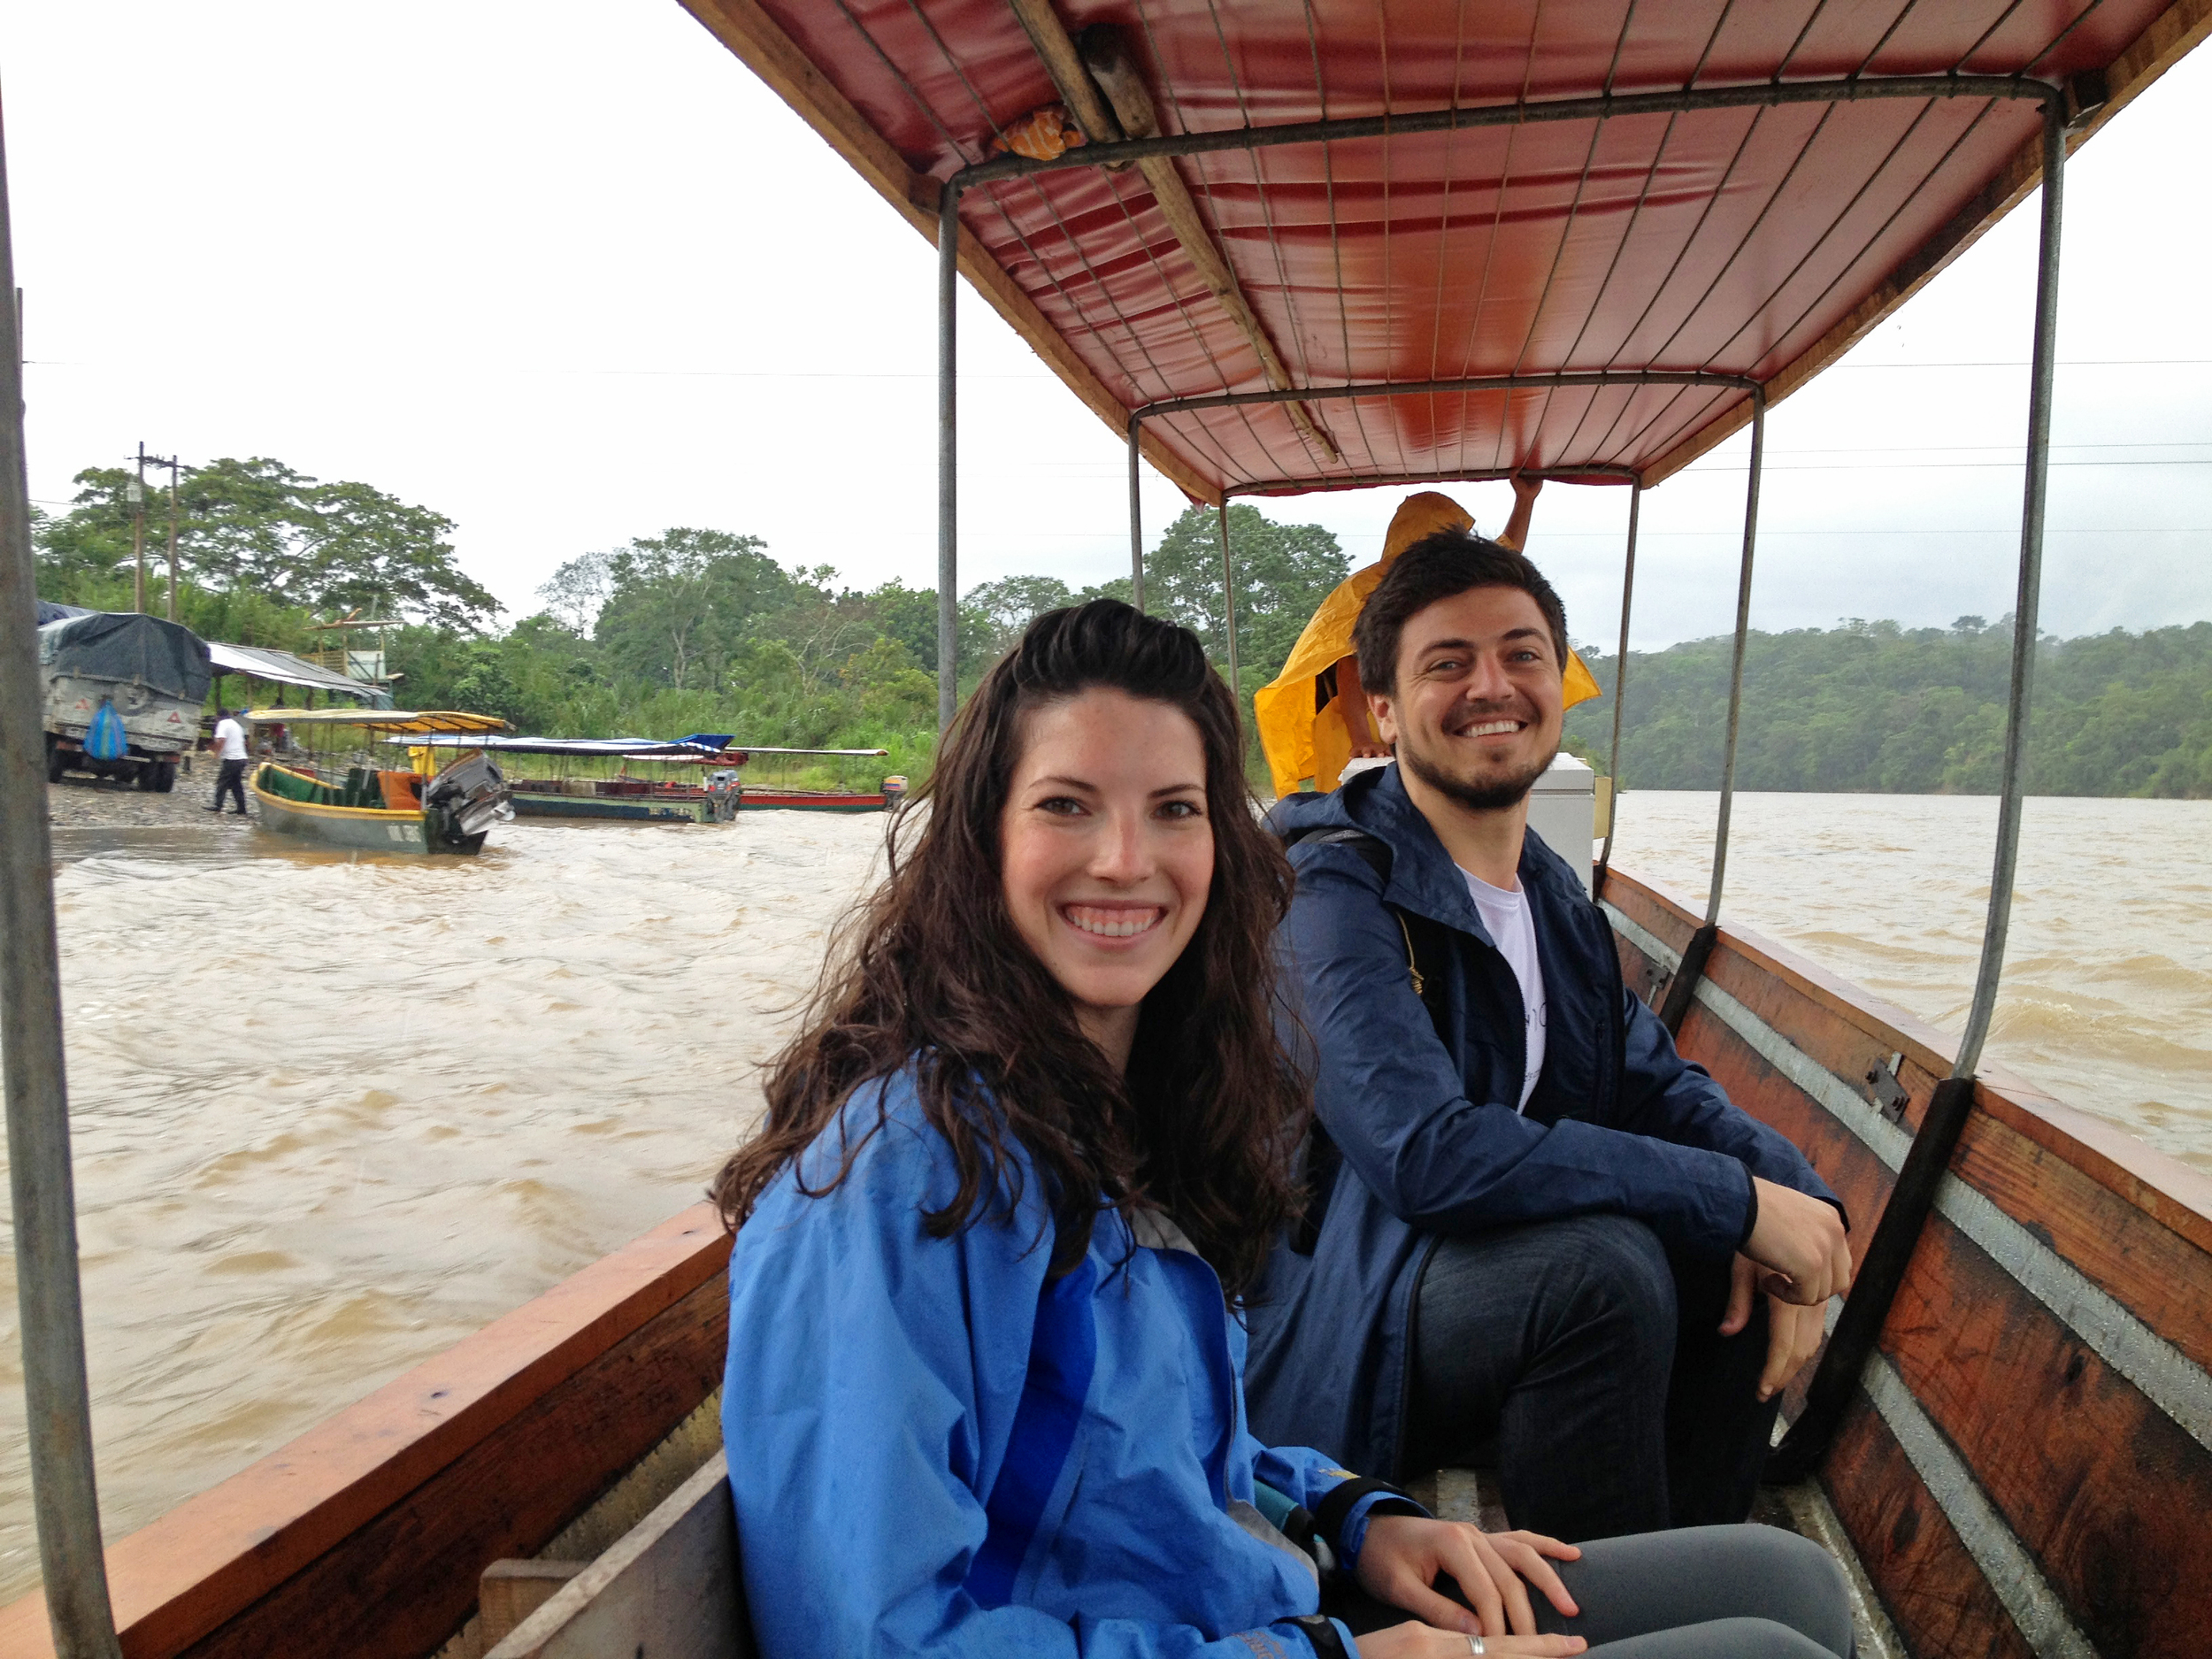 """To get to one of the four clinics we're working at in rural Ecuador, Lauren Braun, our founder and President, and Alex Bozzette, our Ecuador Project Coordinator, and Trish Braun, our VP (not pictured), had to take this long boat across a river during a rainstorm as it's the only way to reach this clinic. Our Ministry of Public Health partners brought along a vaccine refrigerator that had been repaired for this clinic, and several iceboxes full of vaccines. This trip highlighted for us a few of the many challenges to maintaining vaccines in a hot, humid, rural environment. When we told them how amazed we were at their dedication to keeping these hard-to-reach people healthy, and they said """"We're just doing our job."""" Photo taken: June 14, 2013."""